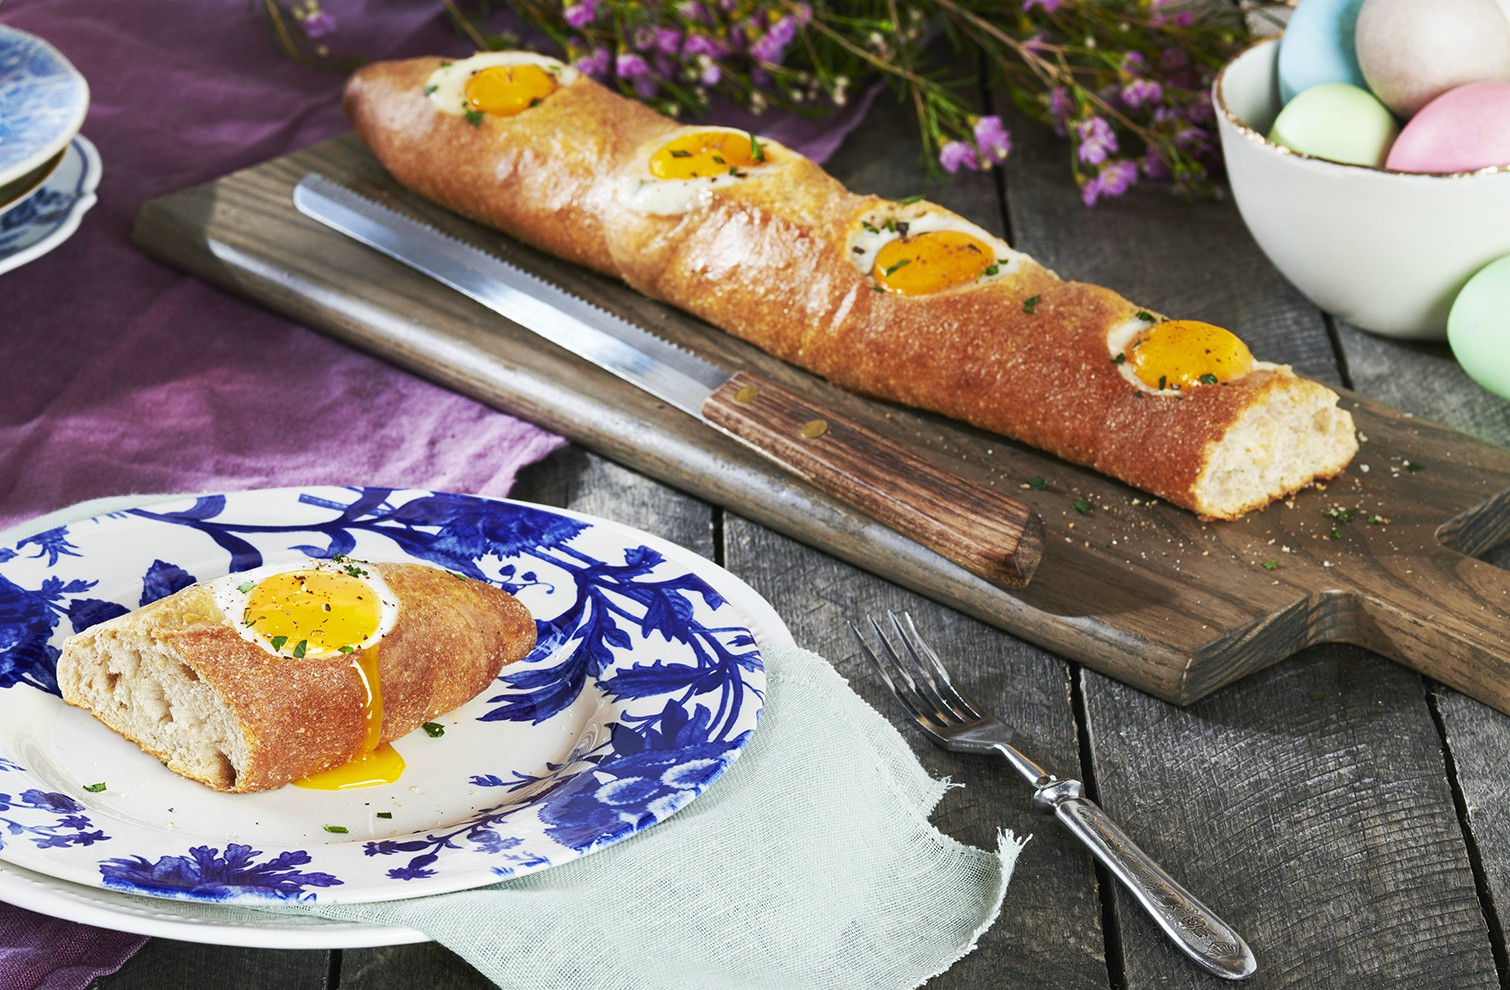 These eggs are too good to stay hidden. This recipe features eggs oven-baked in a warm baguette.